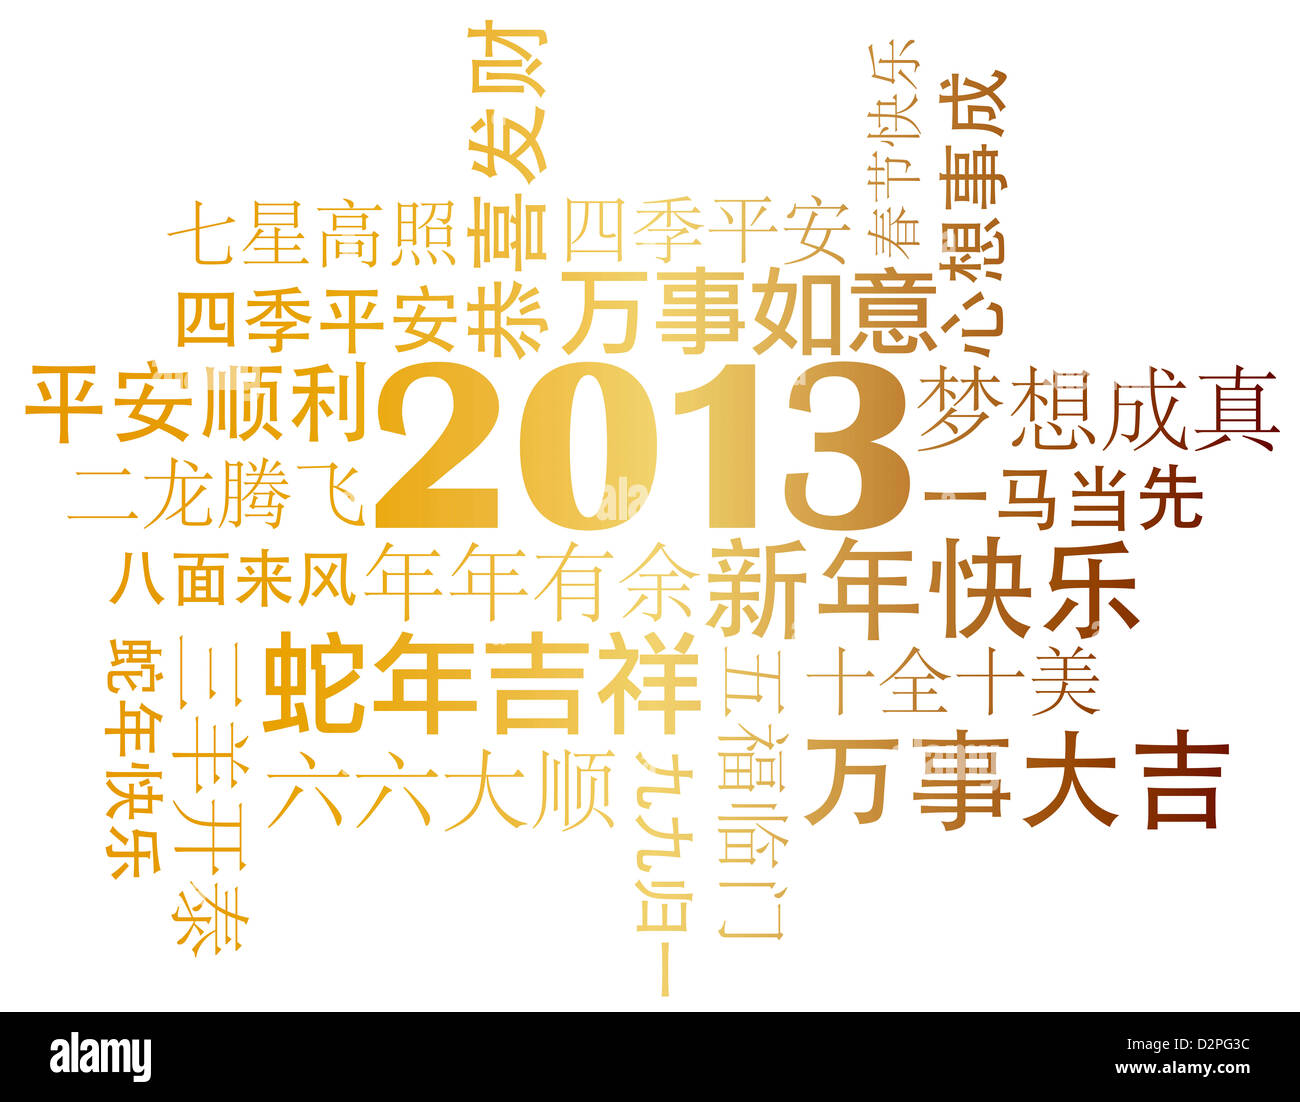 2013 Happy Chinese New Year Greetings and Well Wishes Calligraphy ...